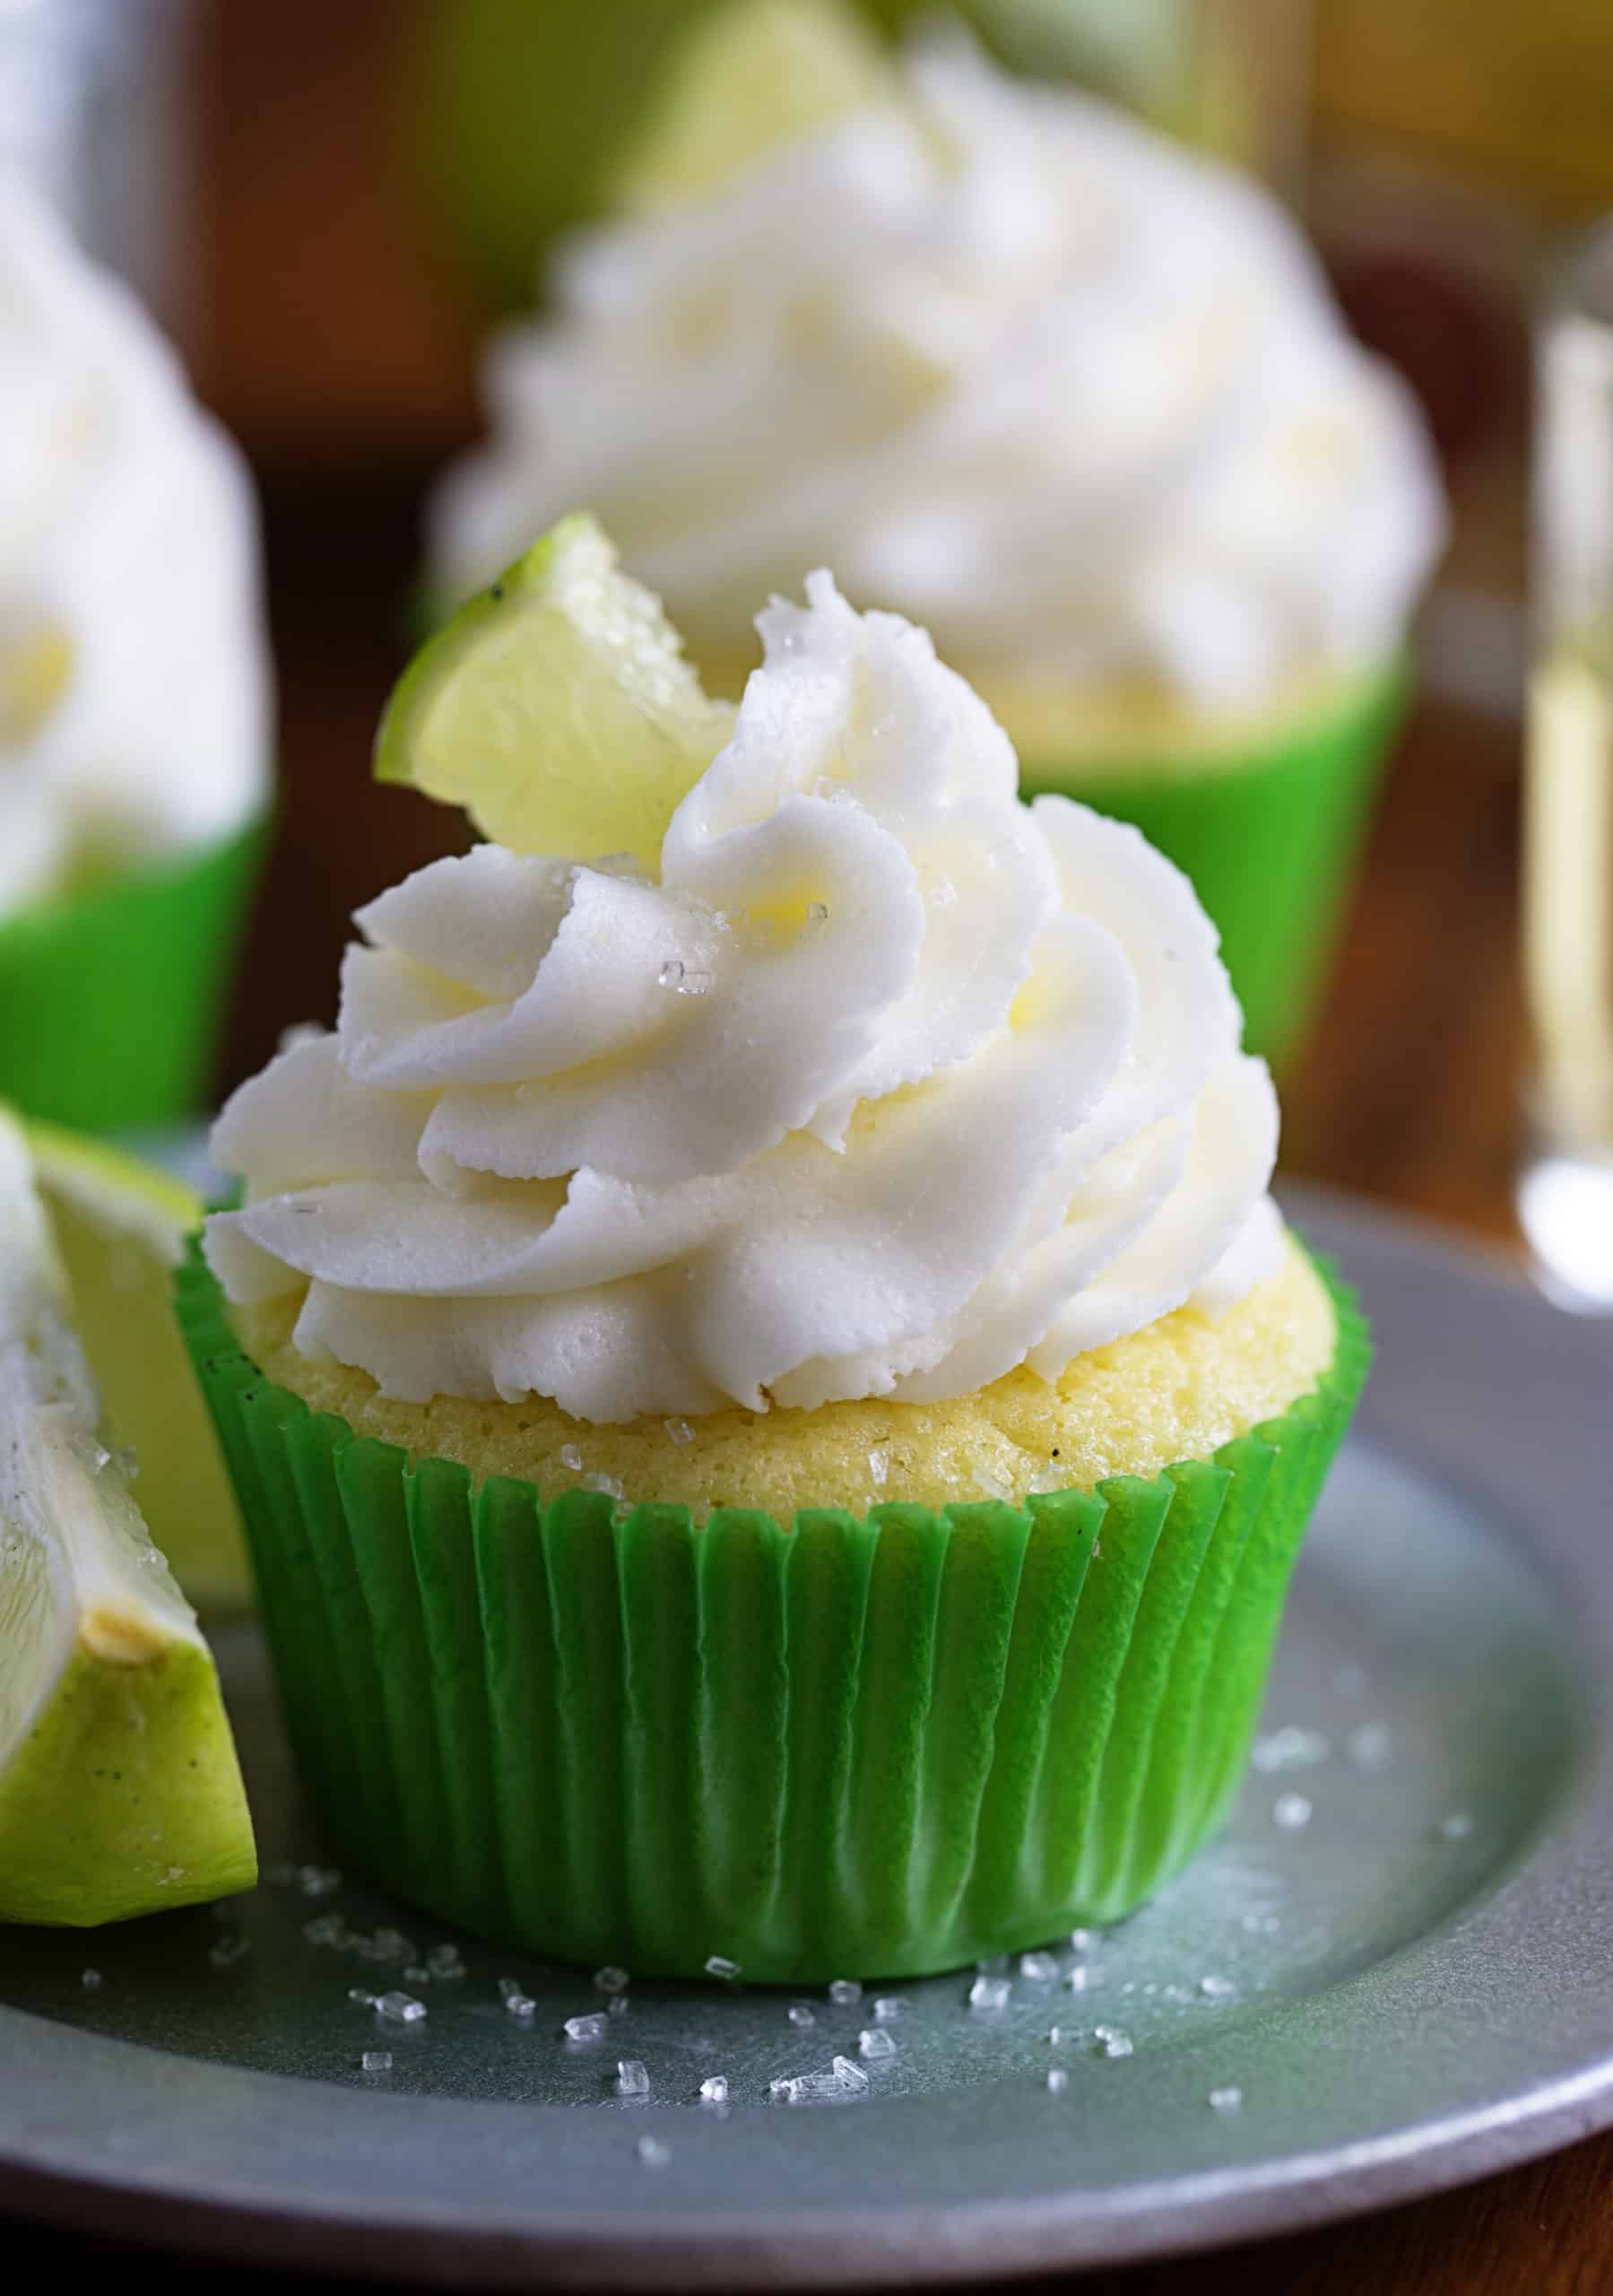 One Margarita Cupcake with Lime Garnish